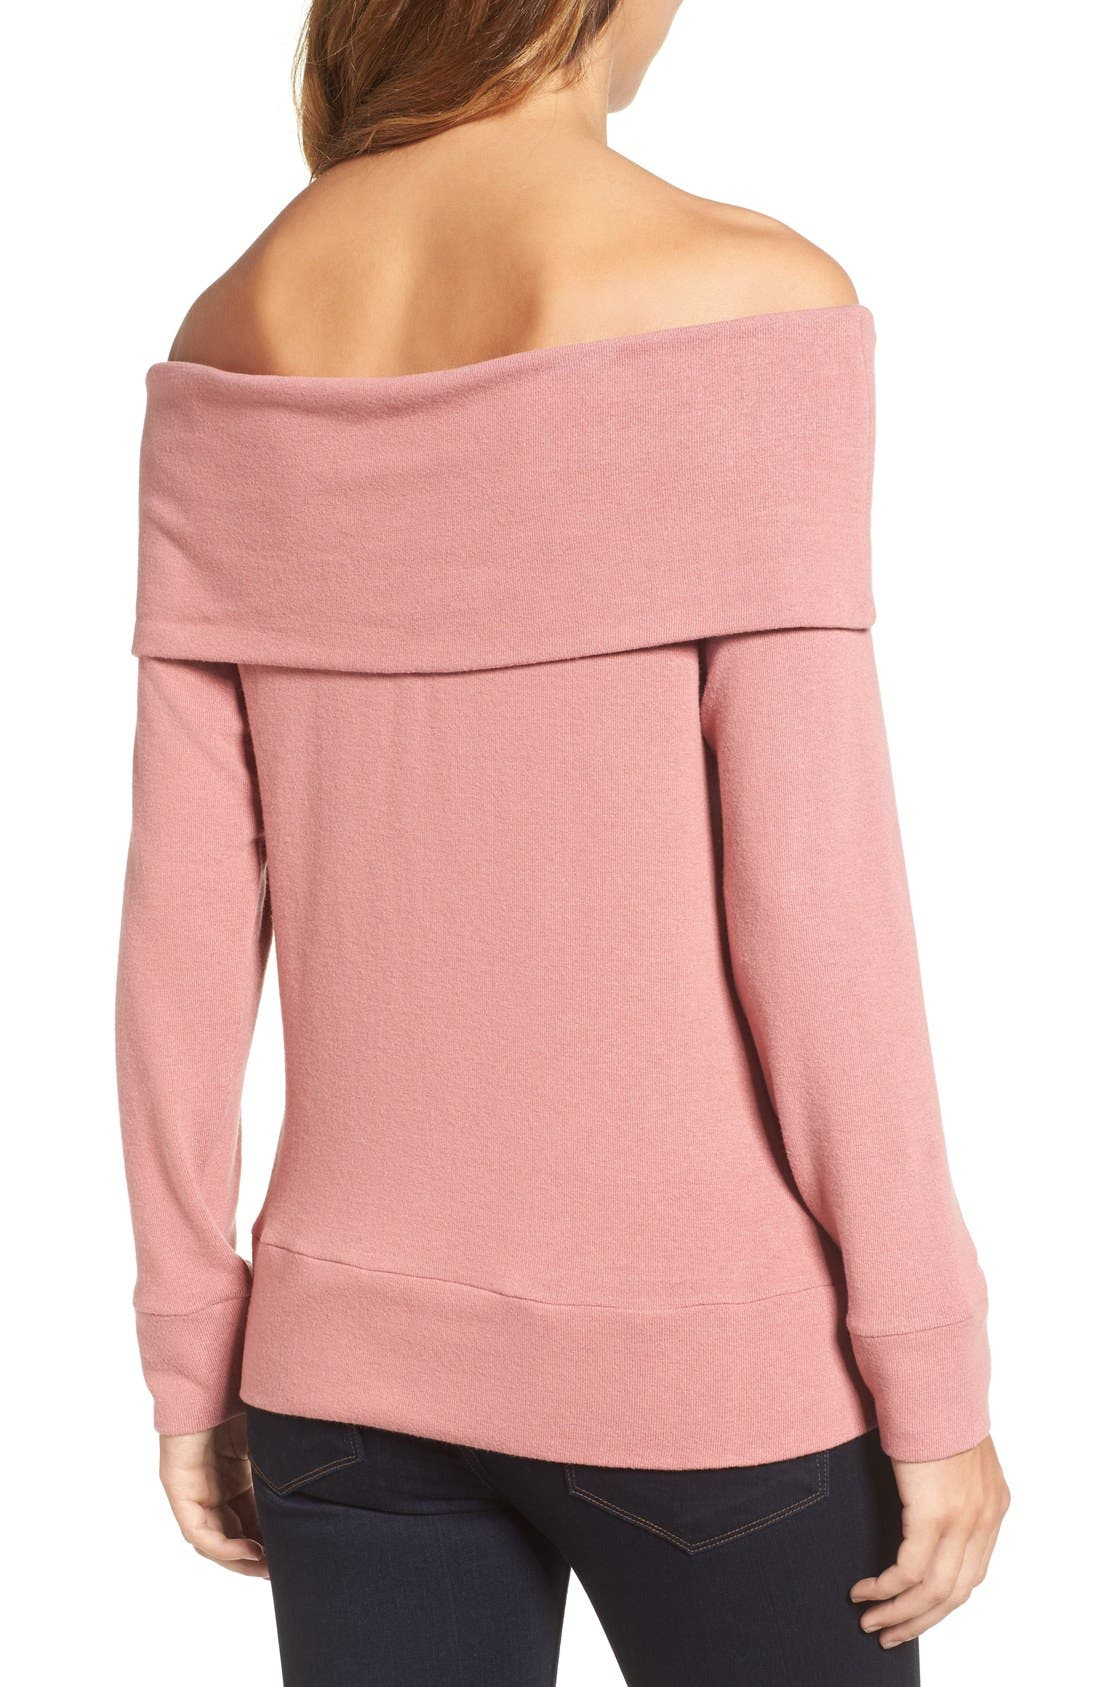 'Brooklyn' Off the Shoulder Top,                             Alternate thumbnail 3, color,                             Cashew Pink